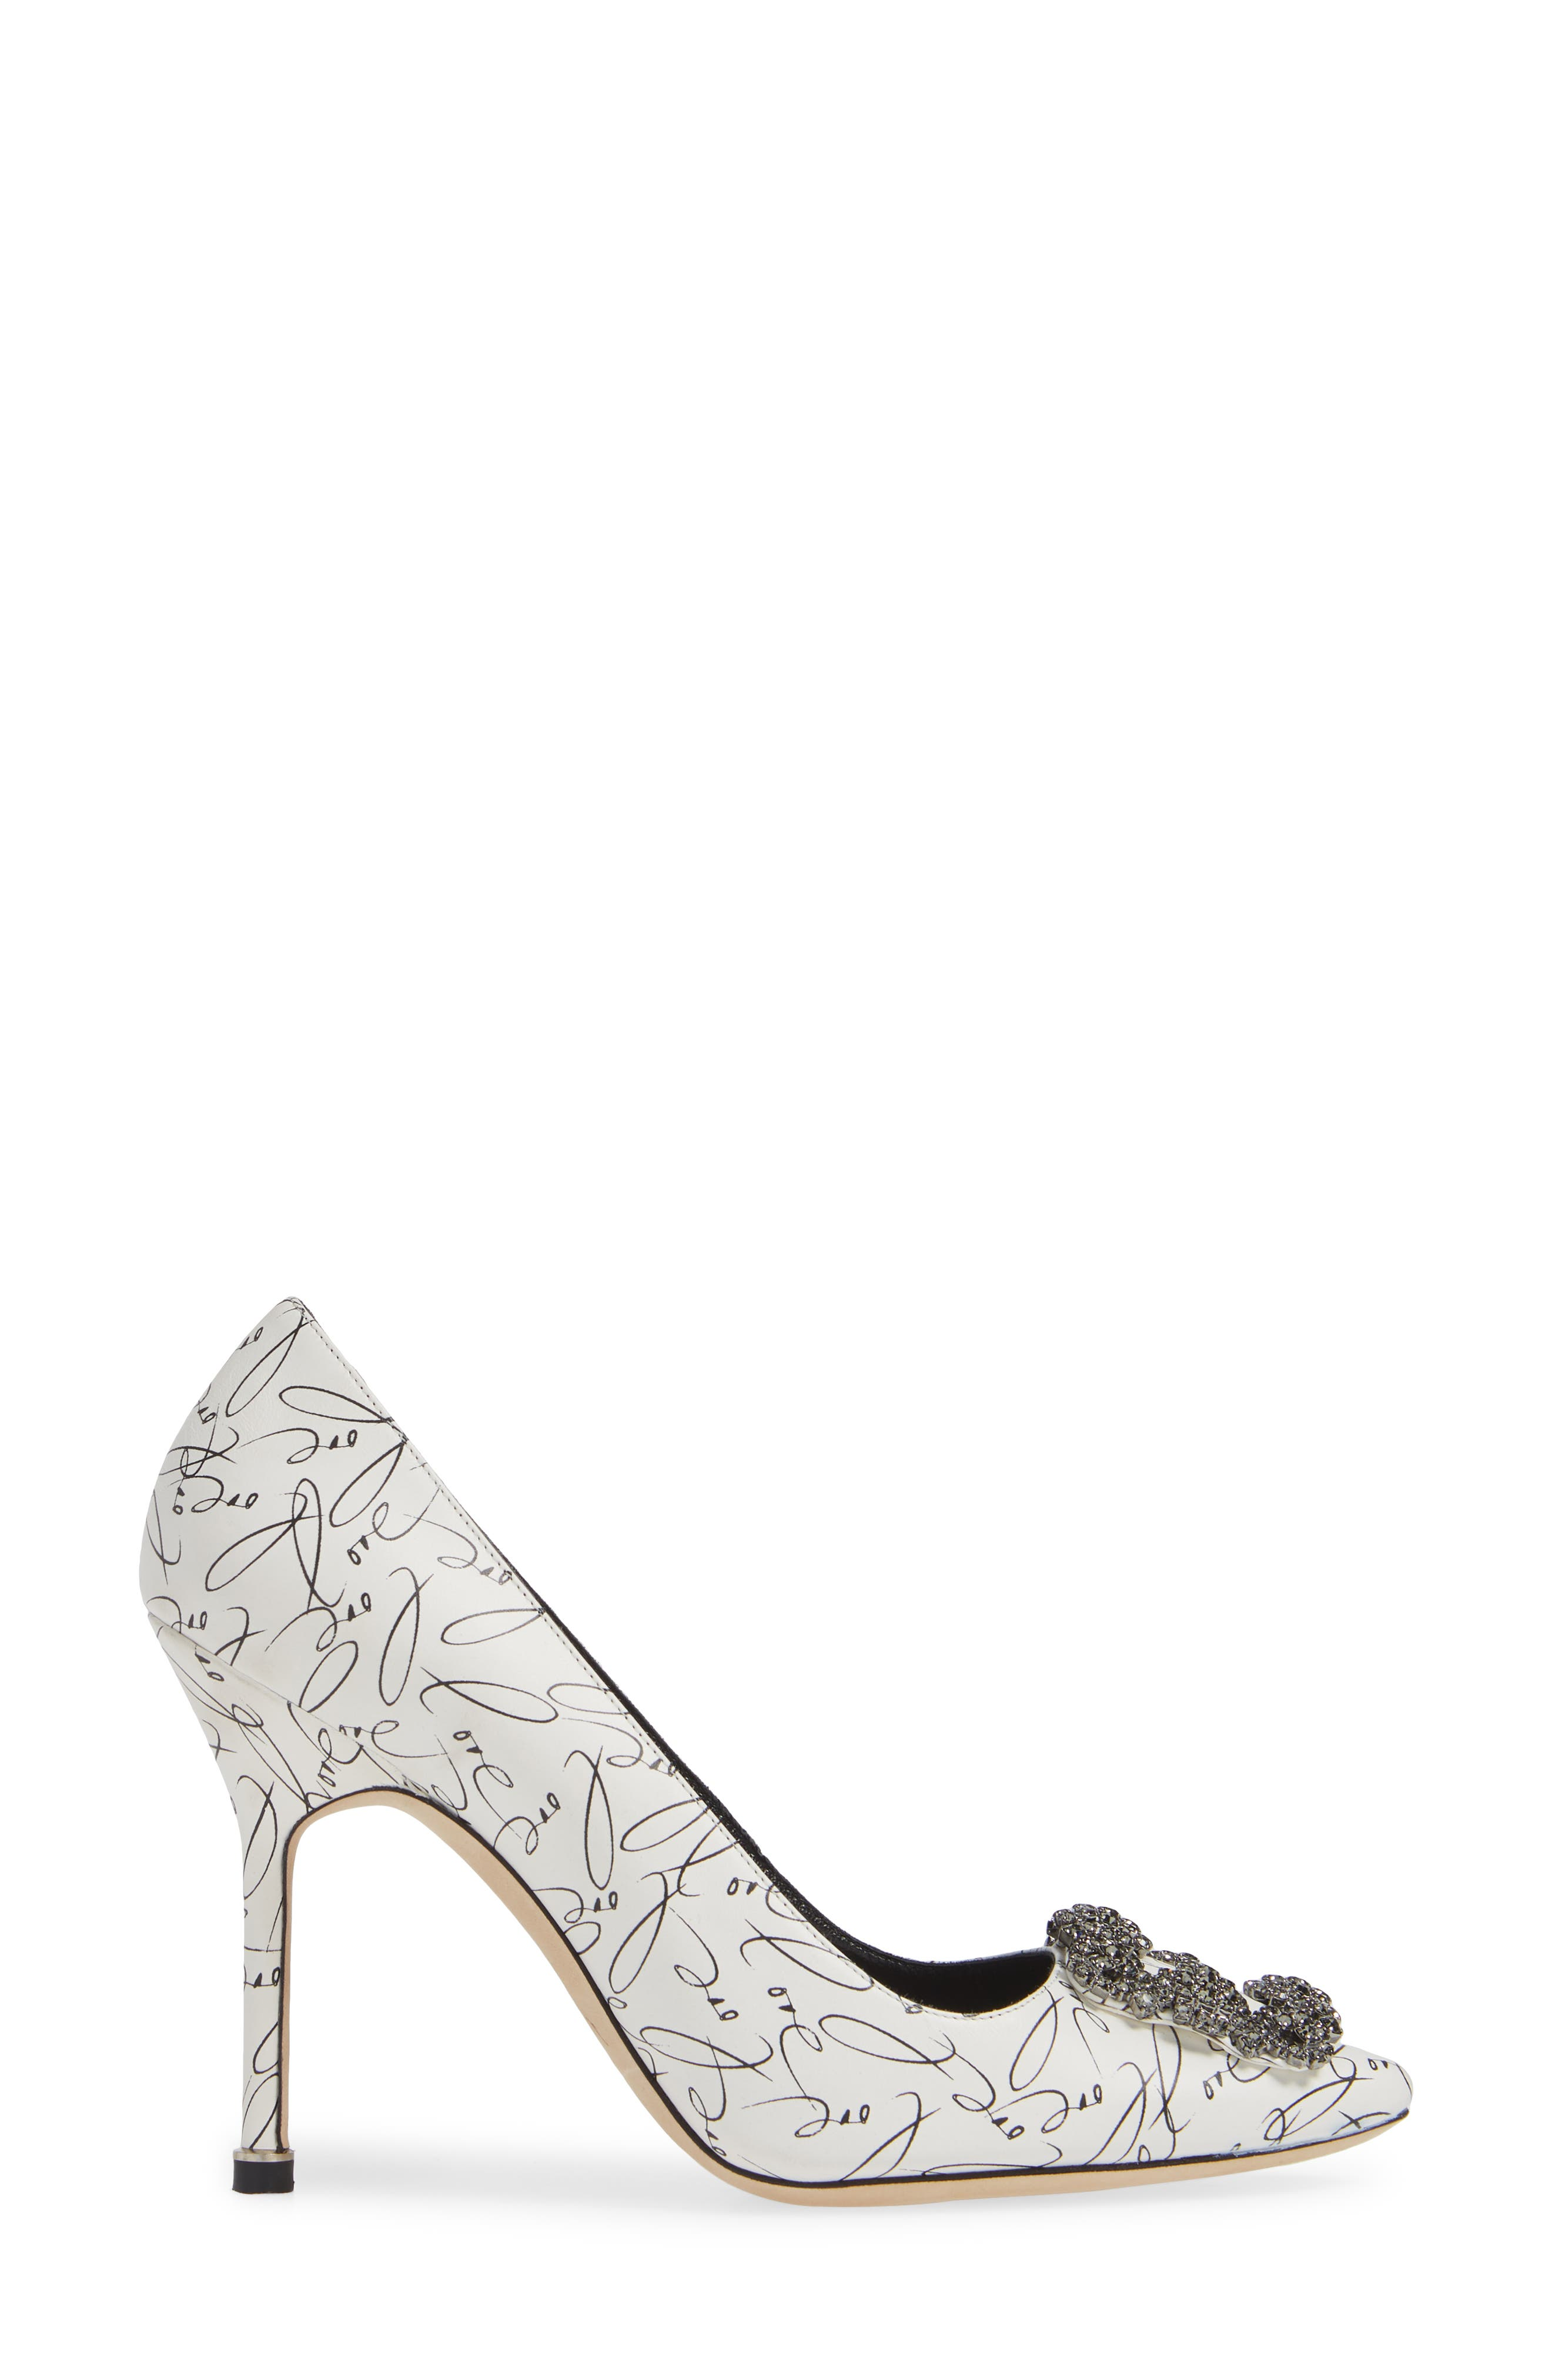 MANOLO BLAHNIK,                             Decade of Love Hangisi Anniversary Embellished Pump,                             Alternate thumbnail 3, color,                             WHITE LEATHER